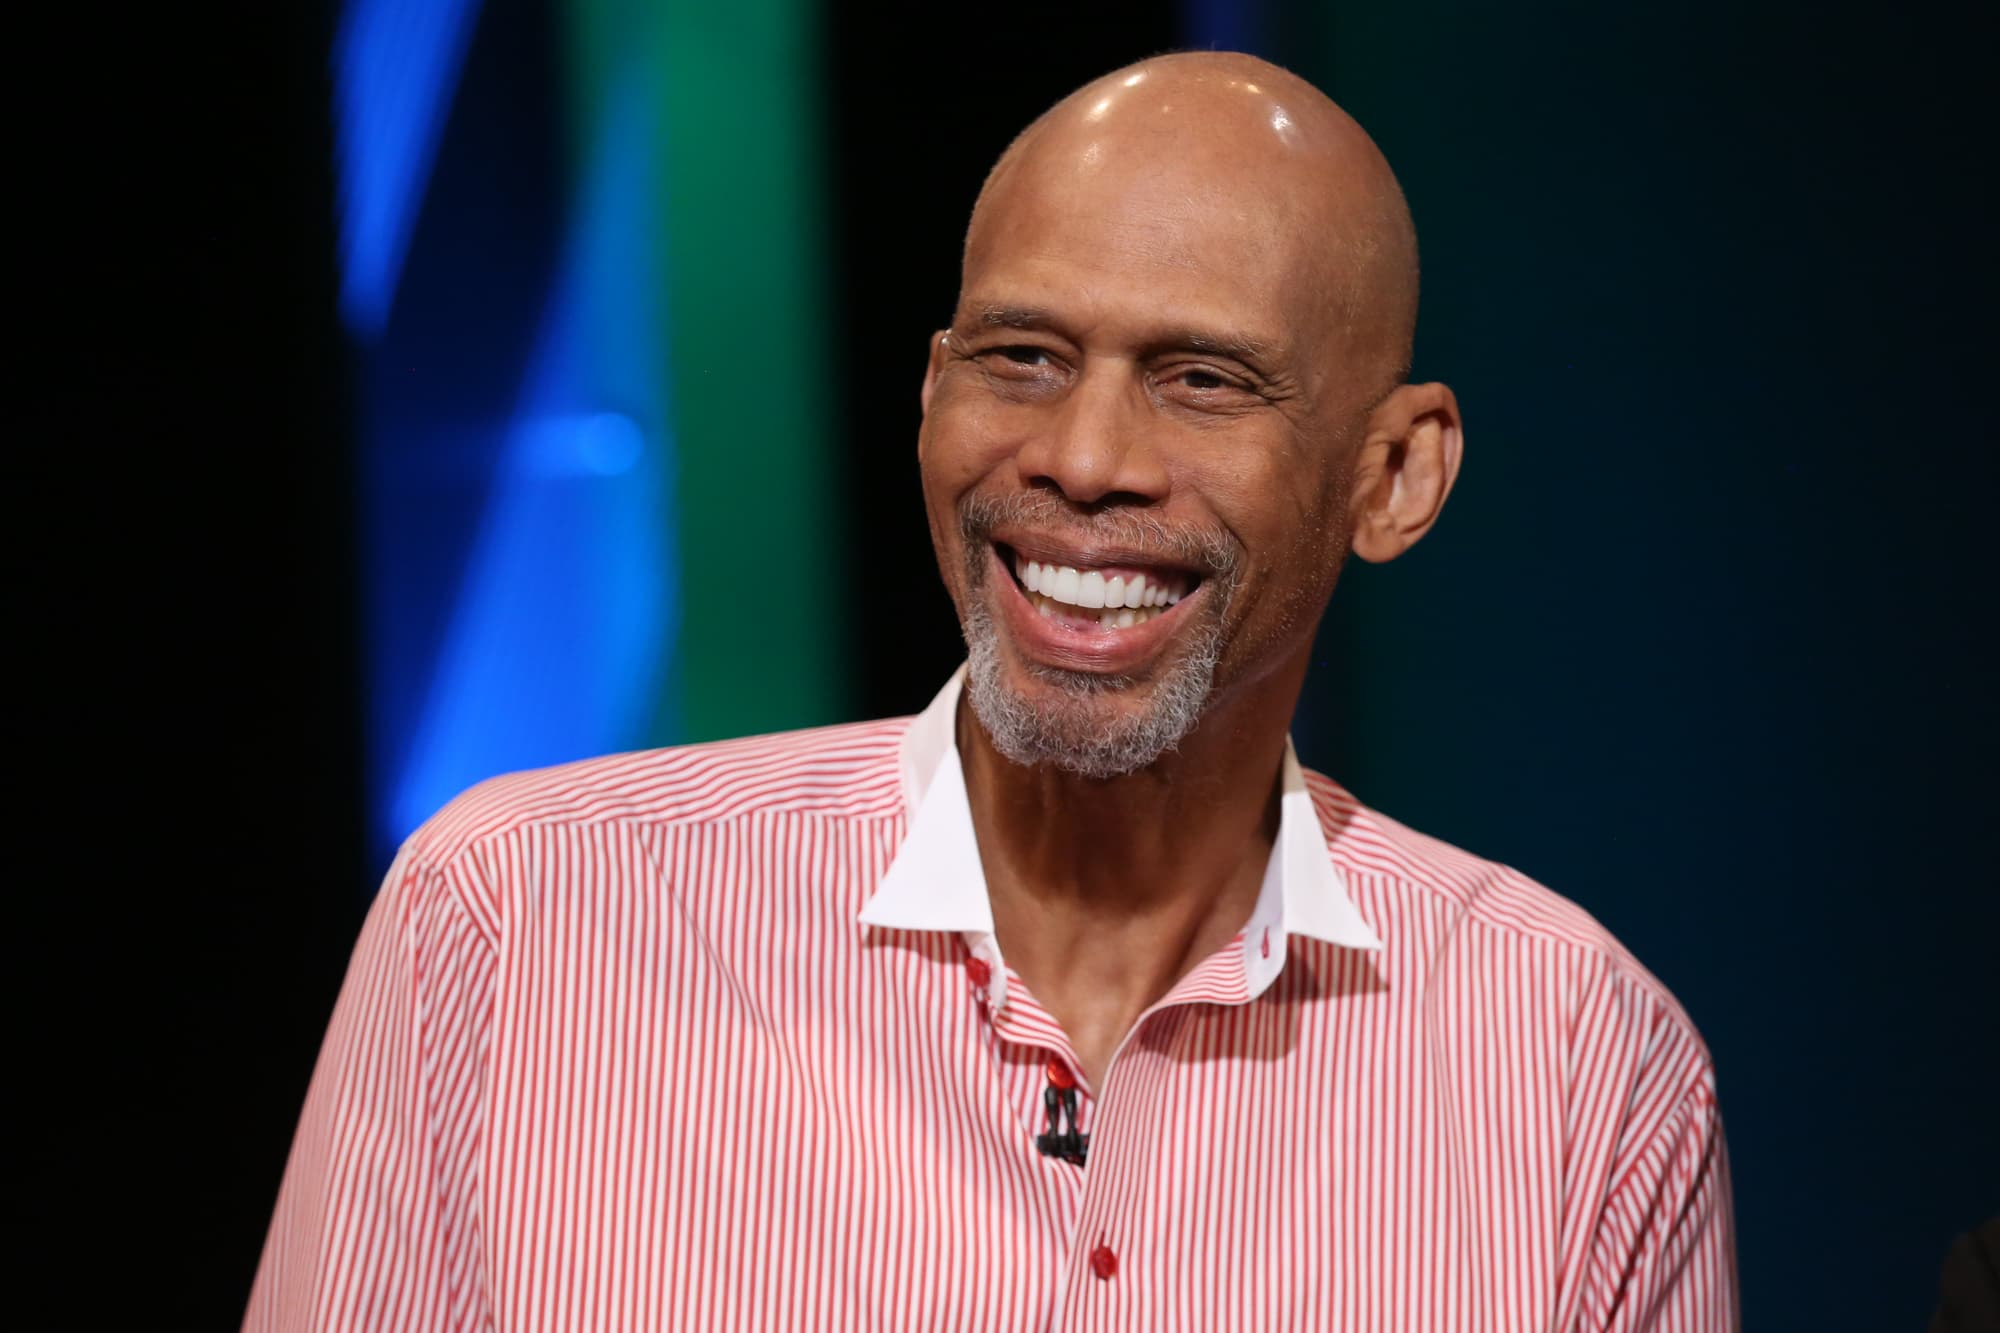 kareem-abdul-jabbar-wants-sports-stars-to-promote-covid-vaccinations